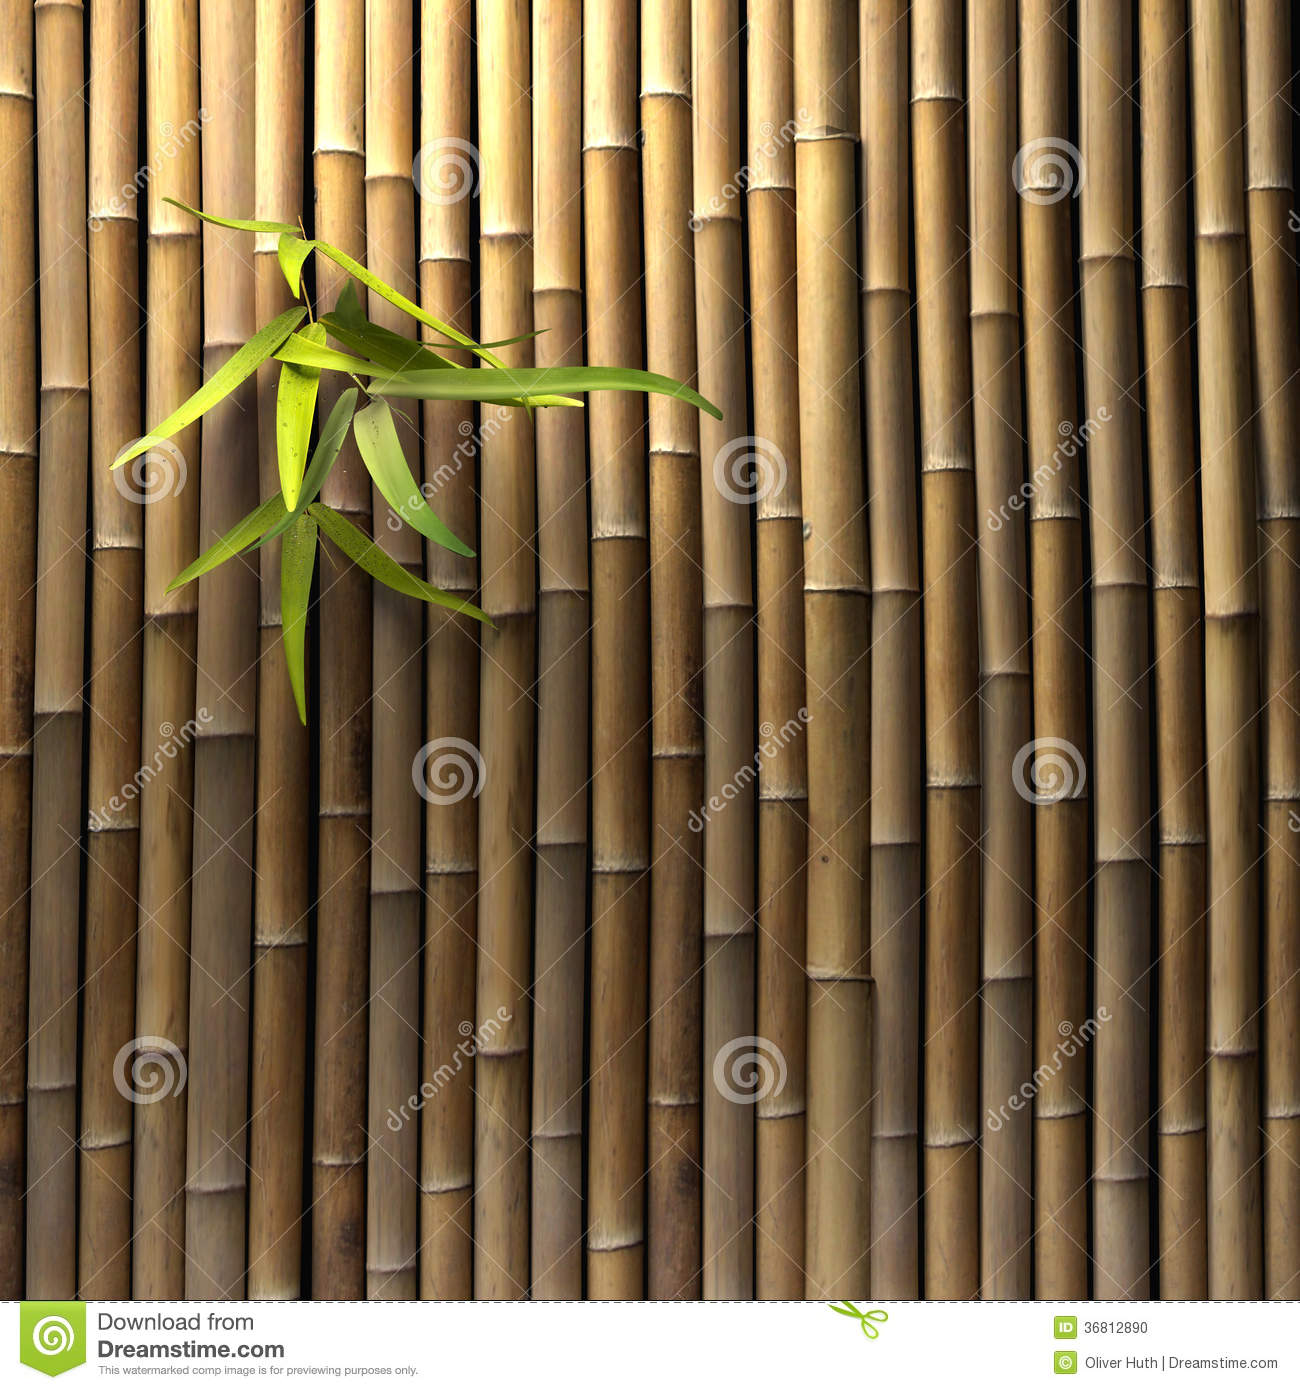 3D render of a Bamboo fence with green leaves.